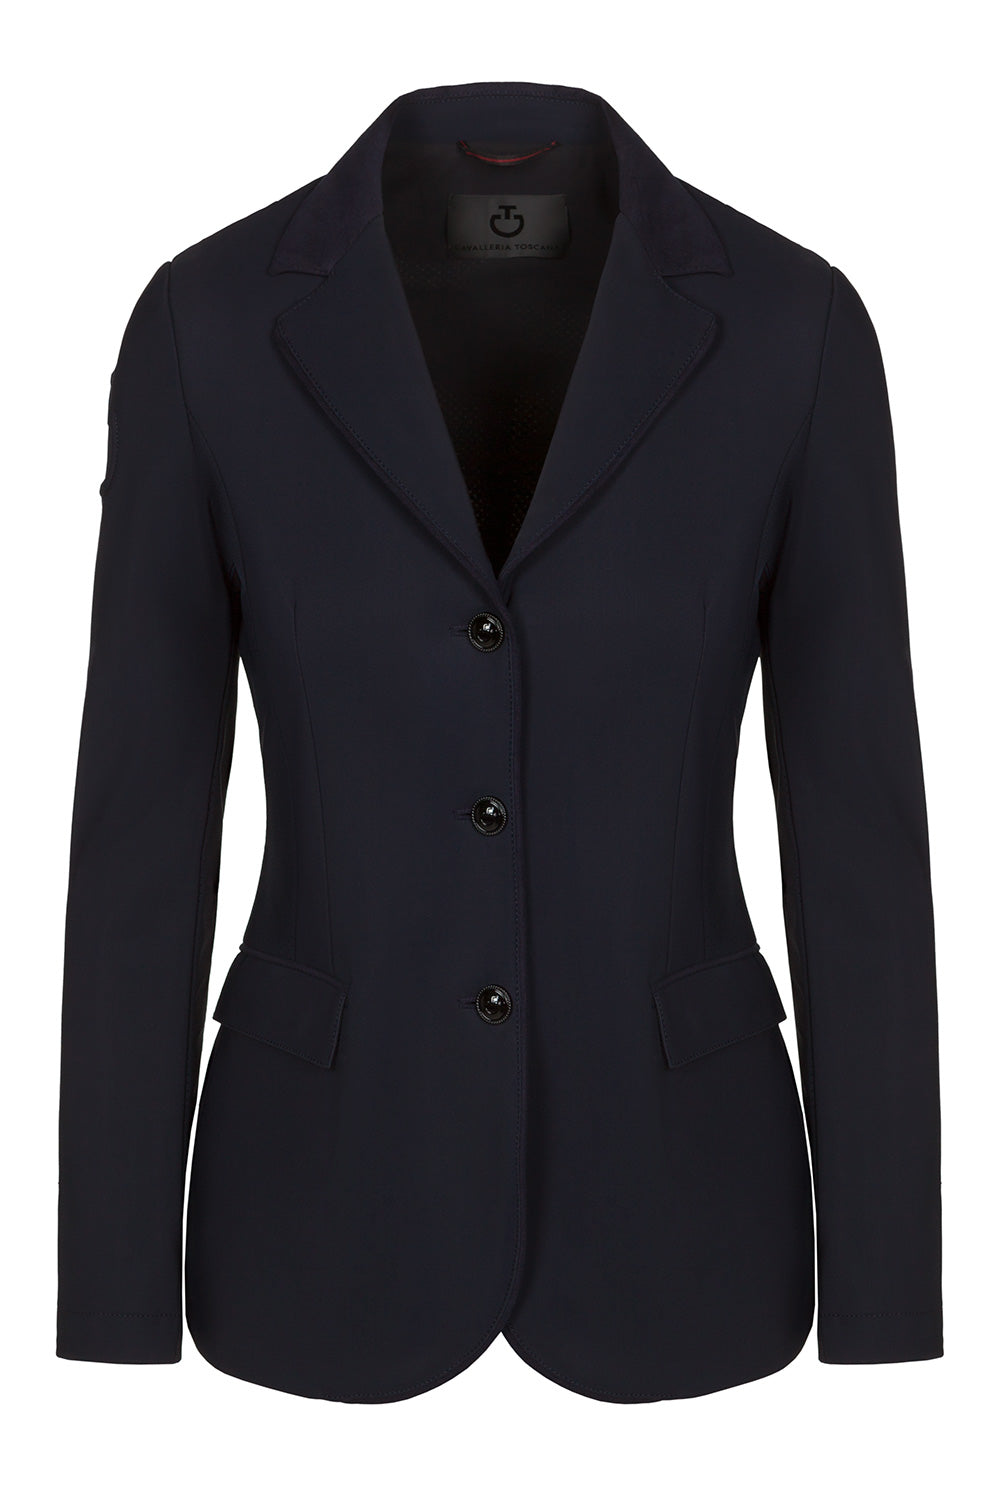 What an amazing new style Jacket!  You'll love the design details on the Cavalleria Toscana GP Perforated Riding Jacket